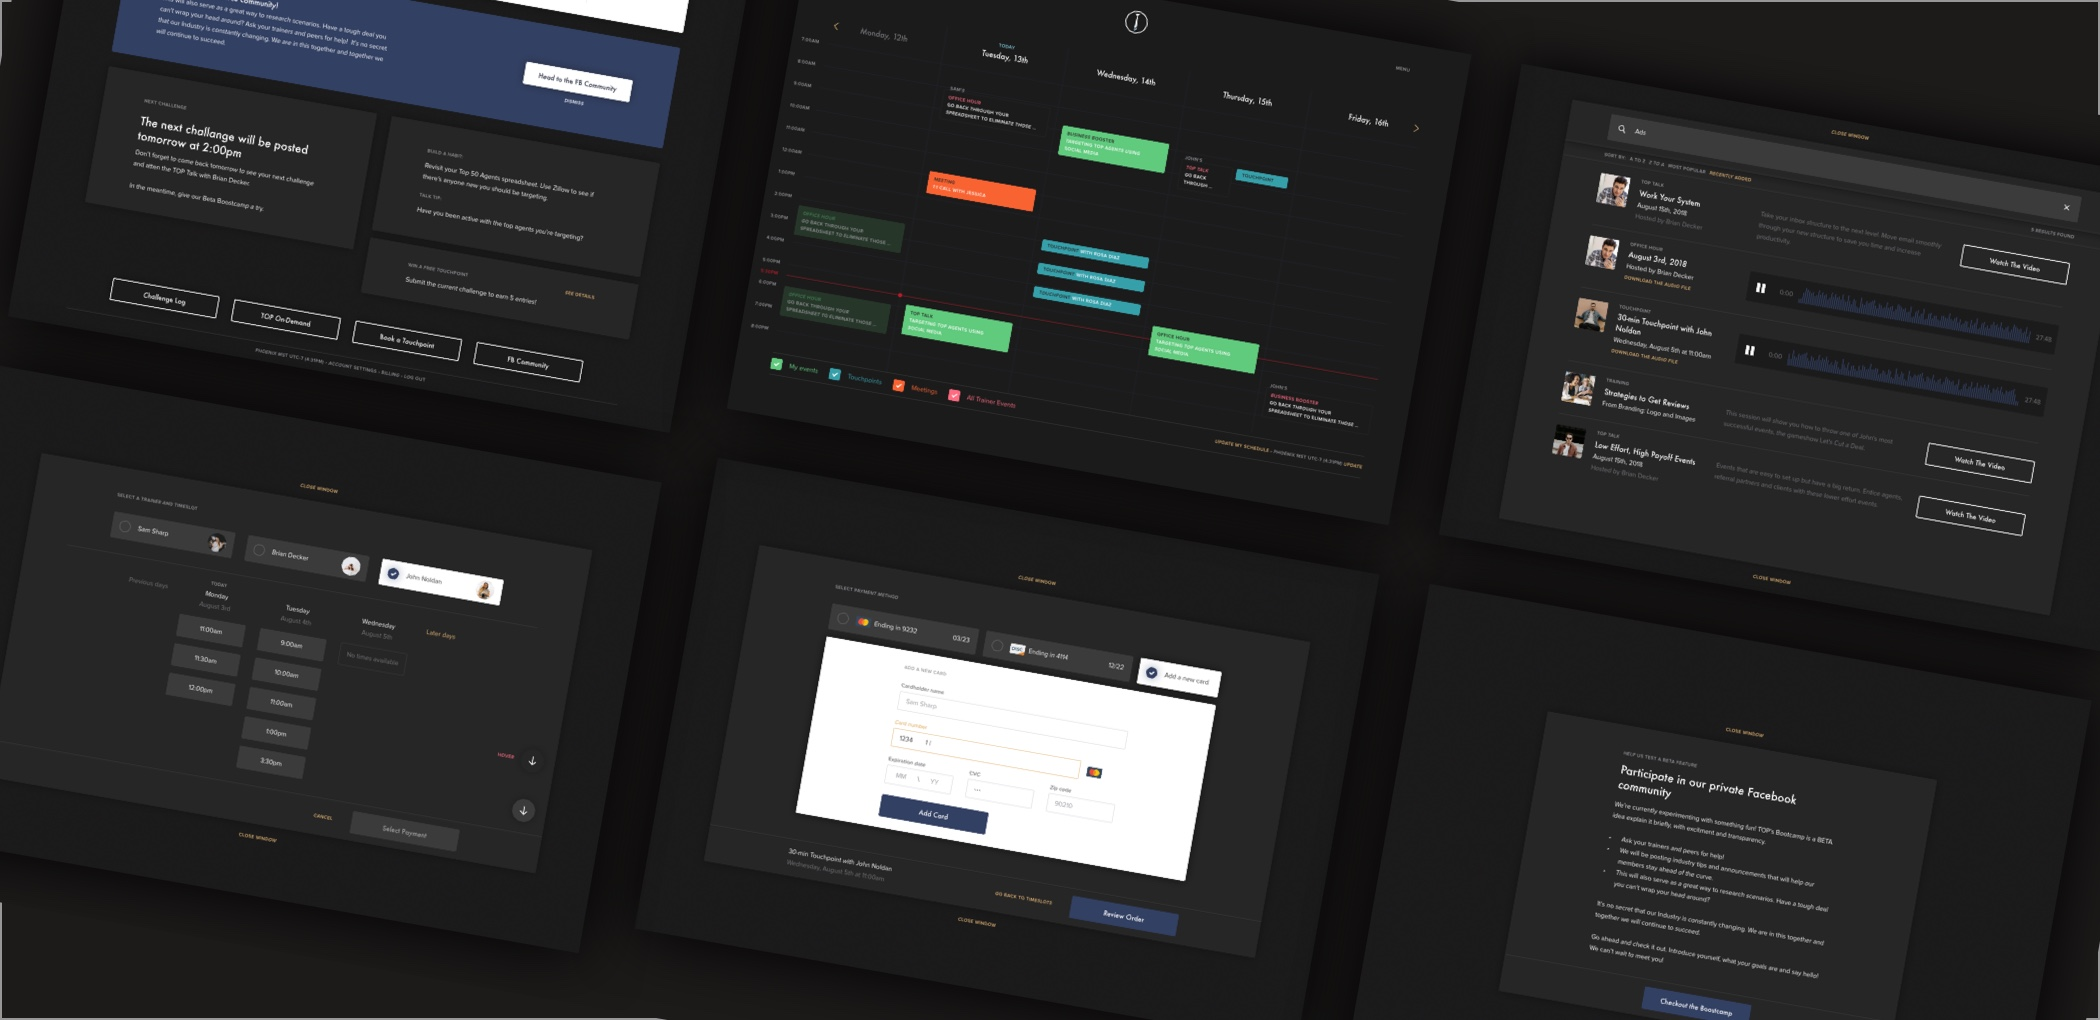 TOP: Web design case study: random screens